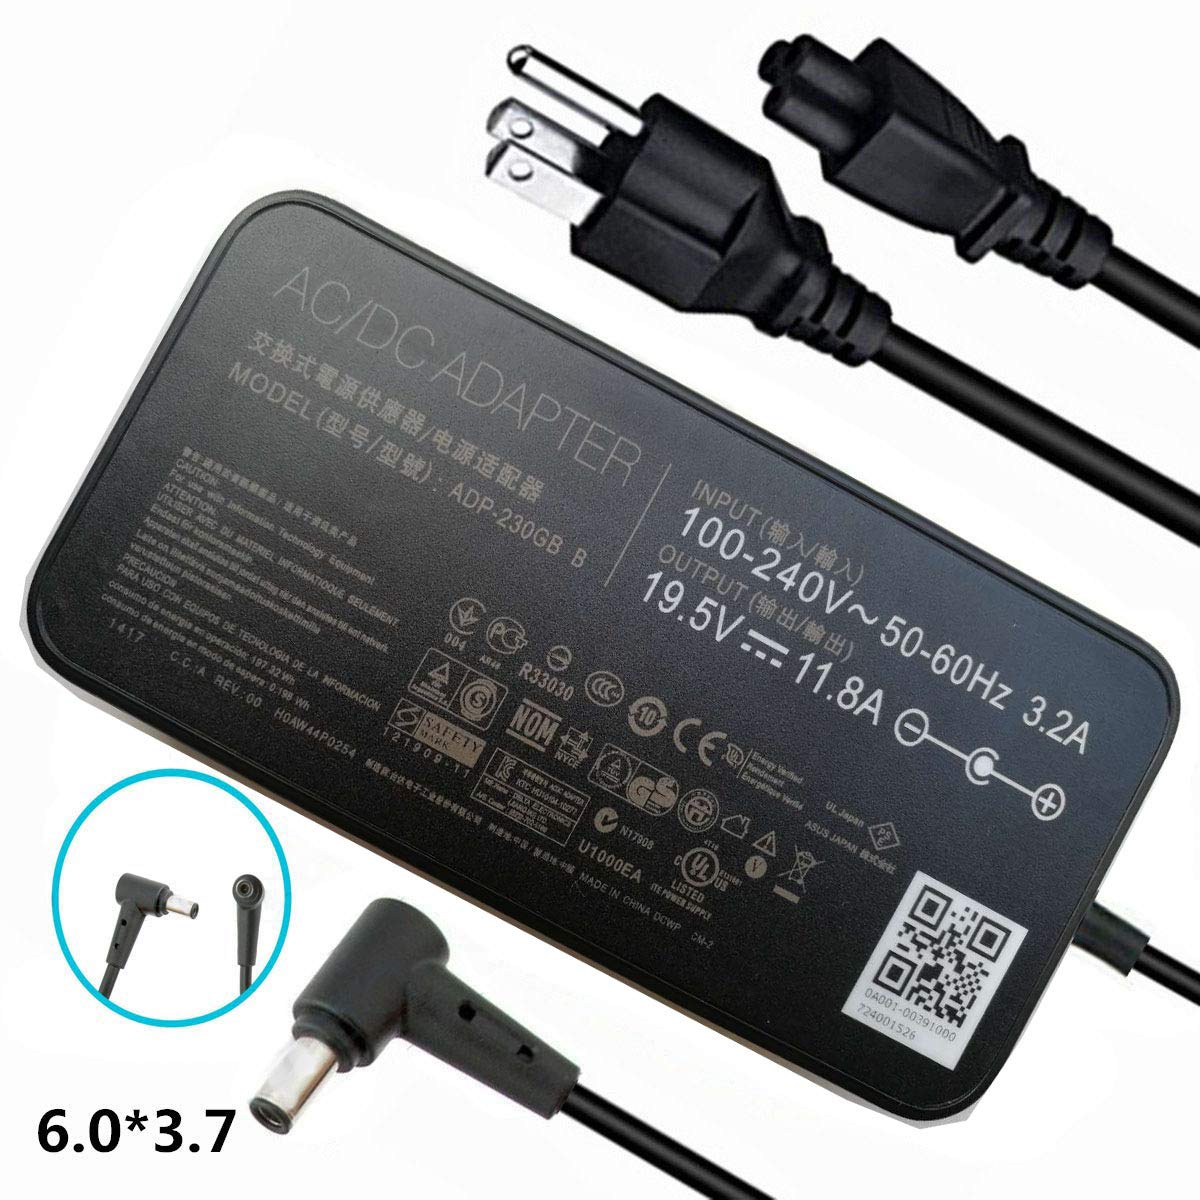 19.5V 11.8A 230W Extra Long 14Ft AC-Adapter-Charger for Asus ROG Zephyrus GM501GS GX501 GX501V GX501VI GX501VI-XS75 GX501VI-XS74 GX501VI-GZ027T ADP-230GB B Laptop Power-Supply Cord